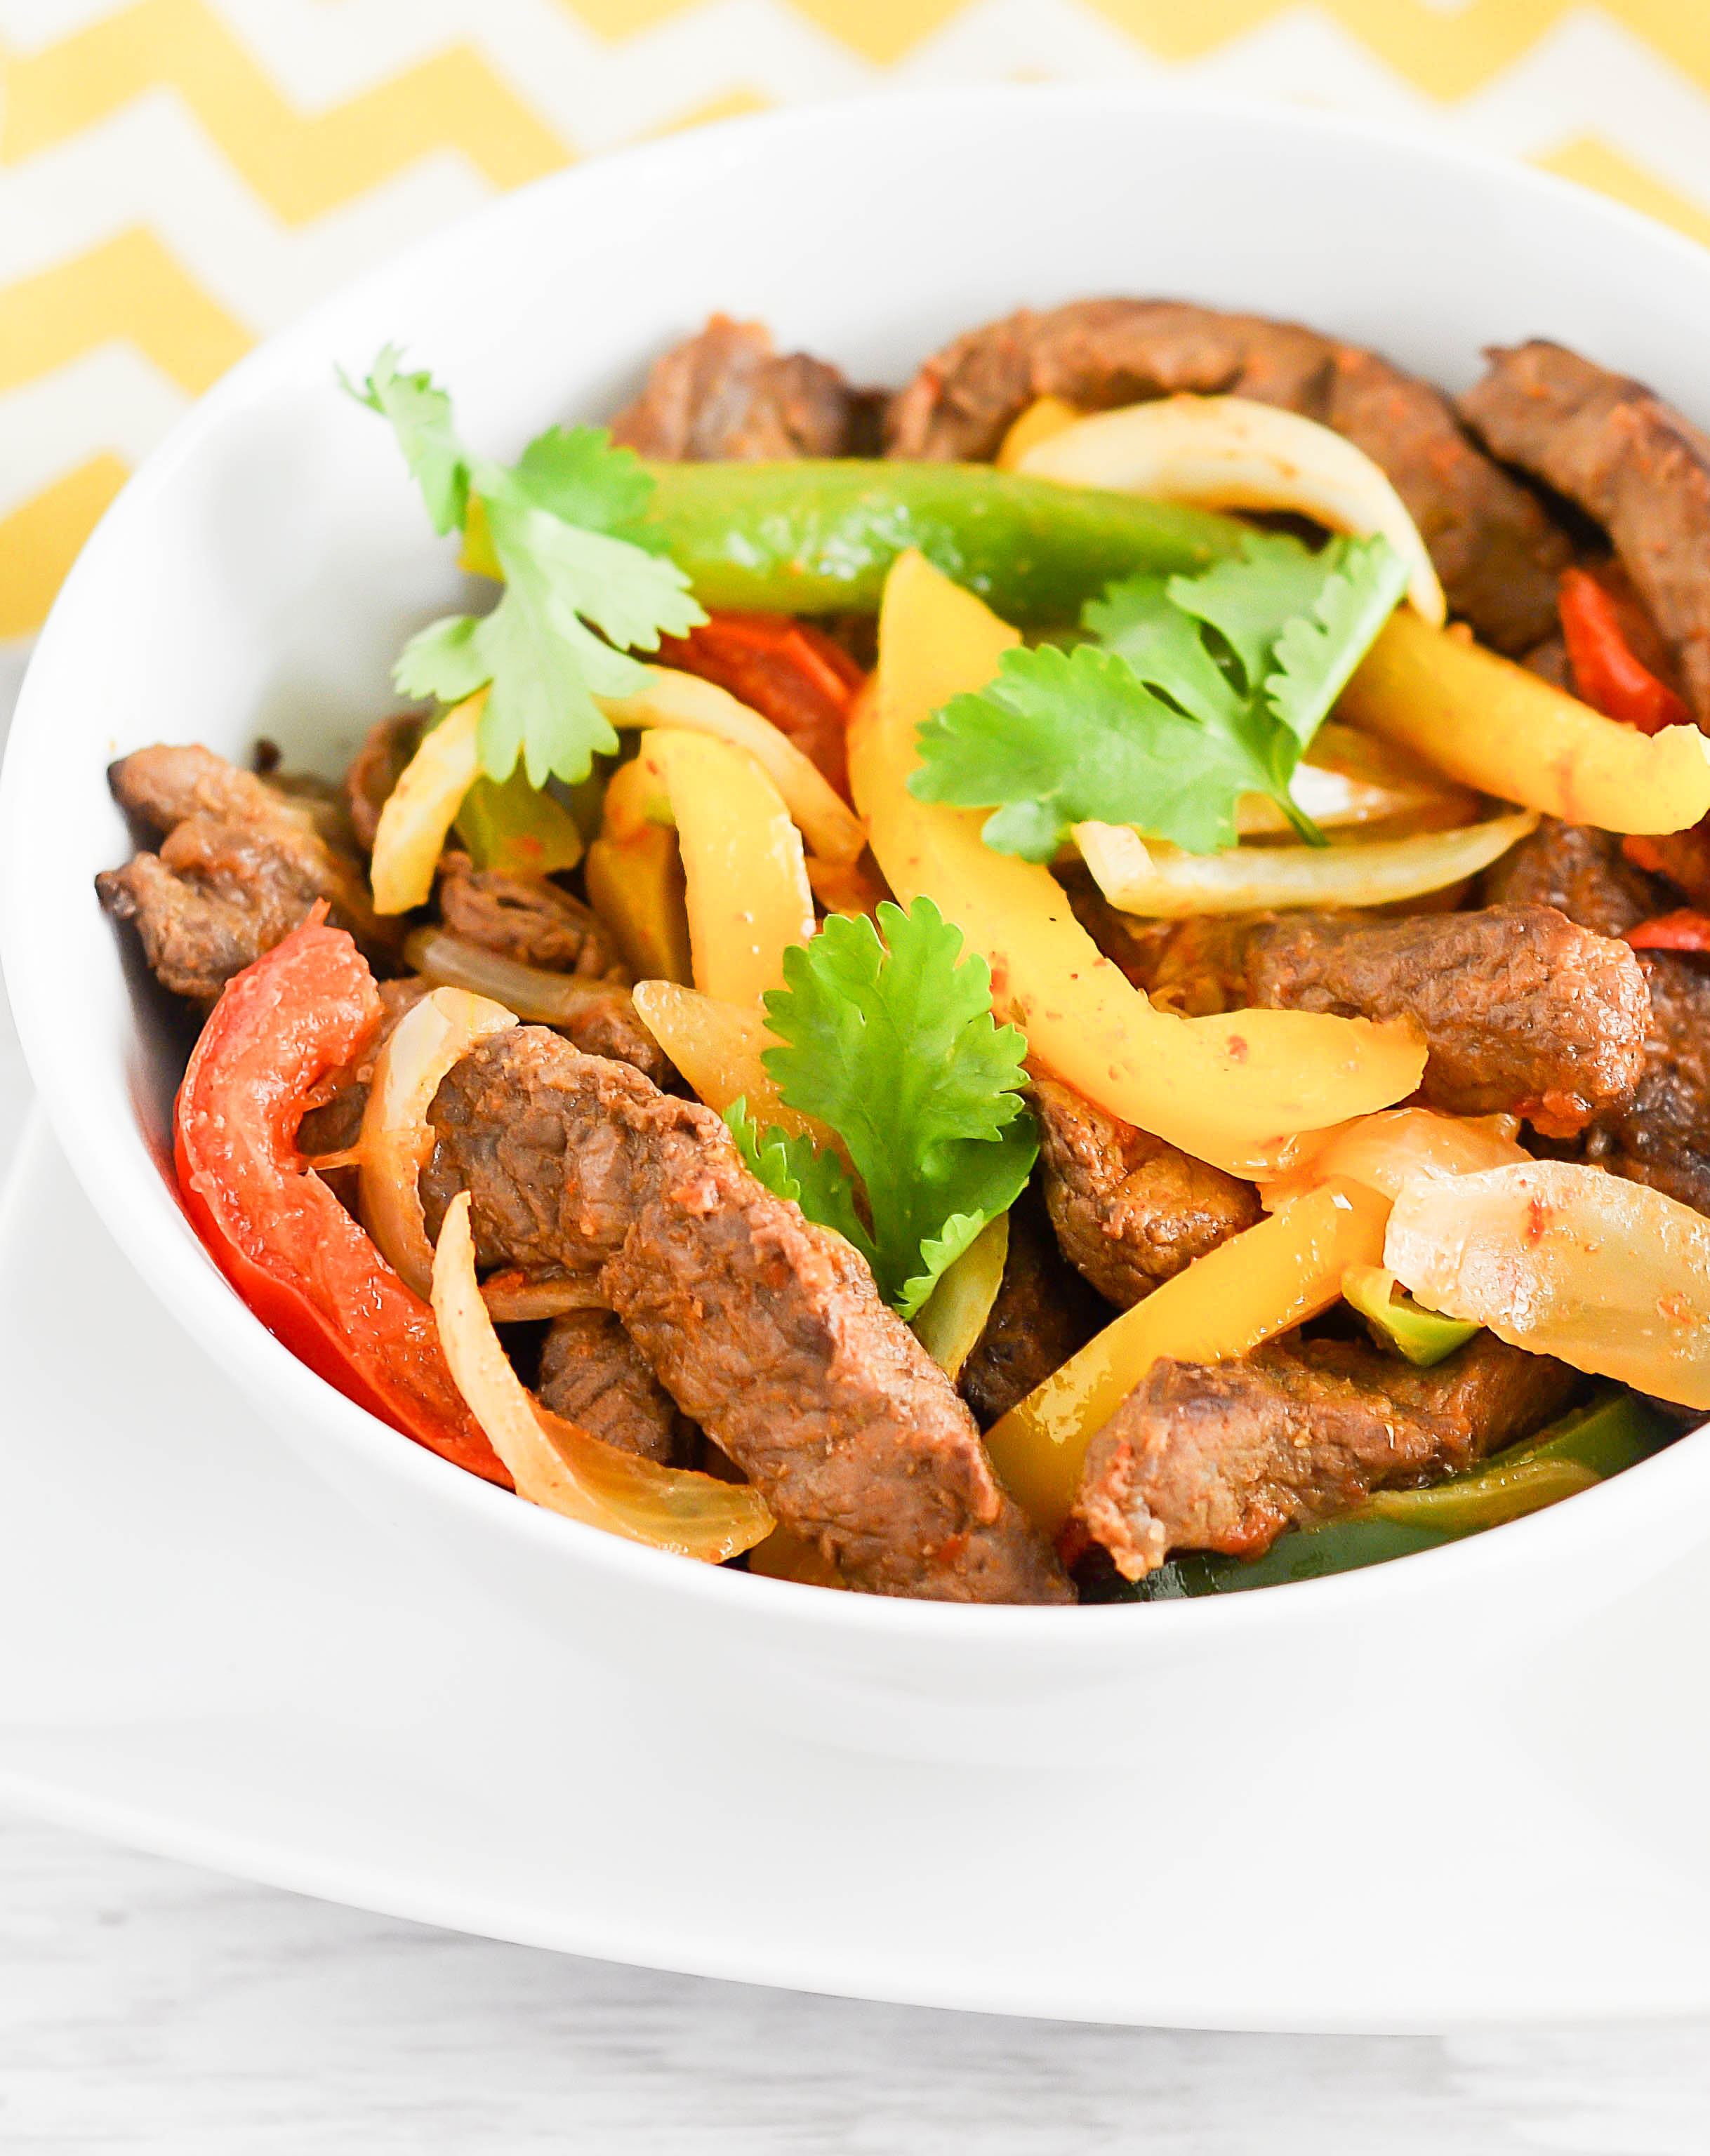 Stir-Fry Steak with Peppers